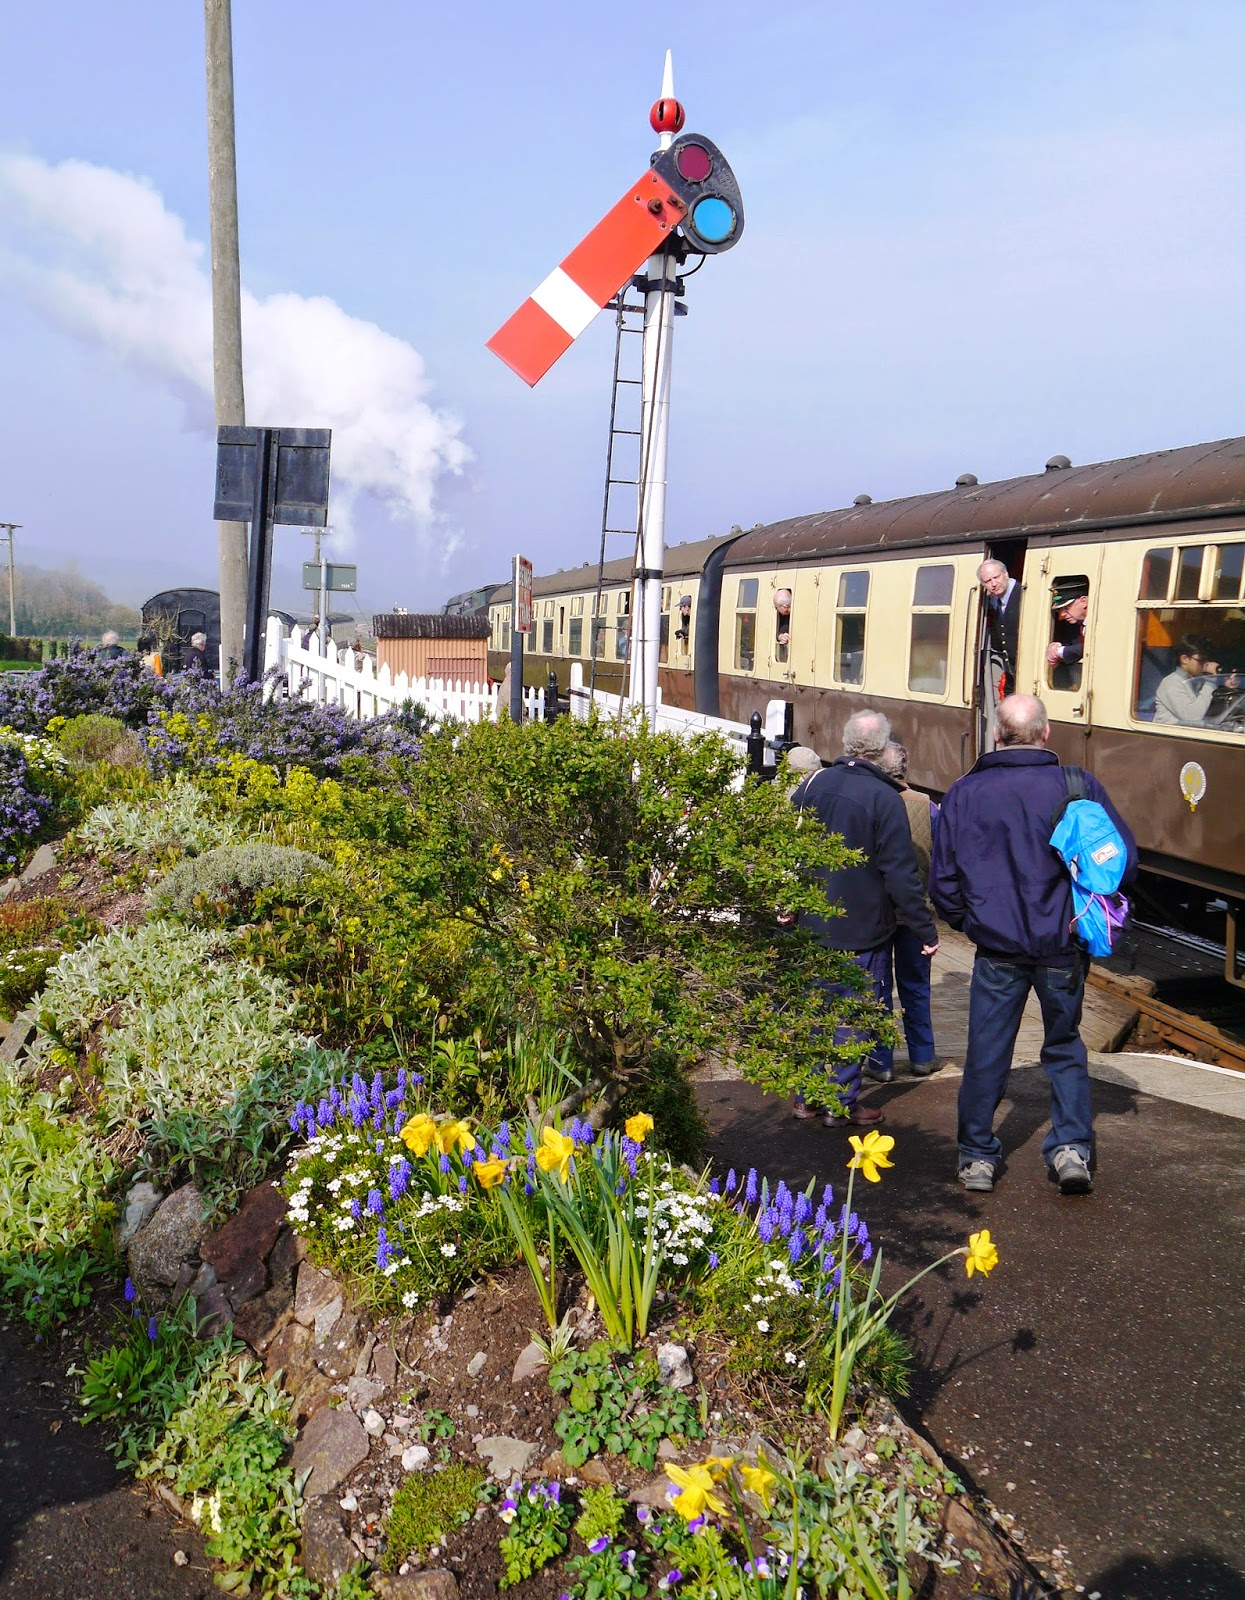 Train leaving Blue Anchor station